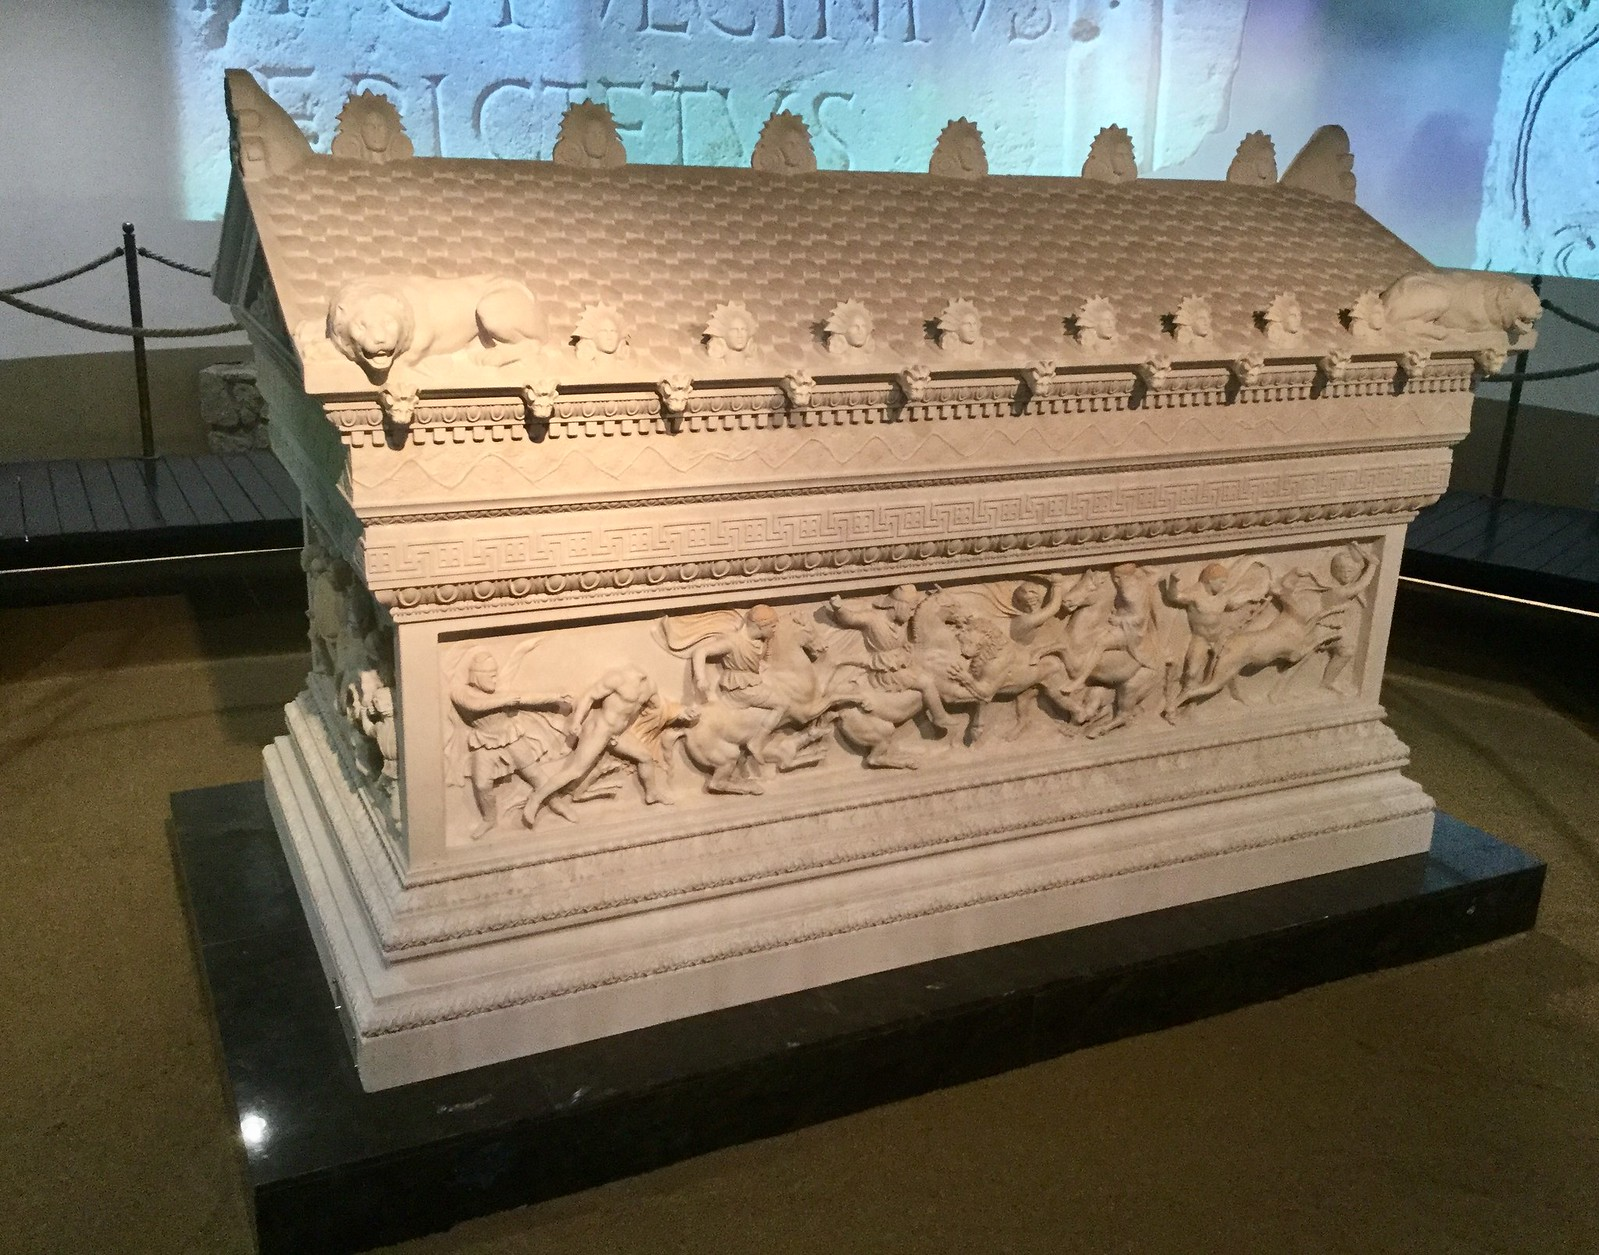 201705 - Balkans - Skopje Archaeological Museum - Ornate Roman Coffin - 87 of 89 - Skopje - Skopje, May 31, 2017